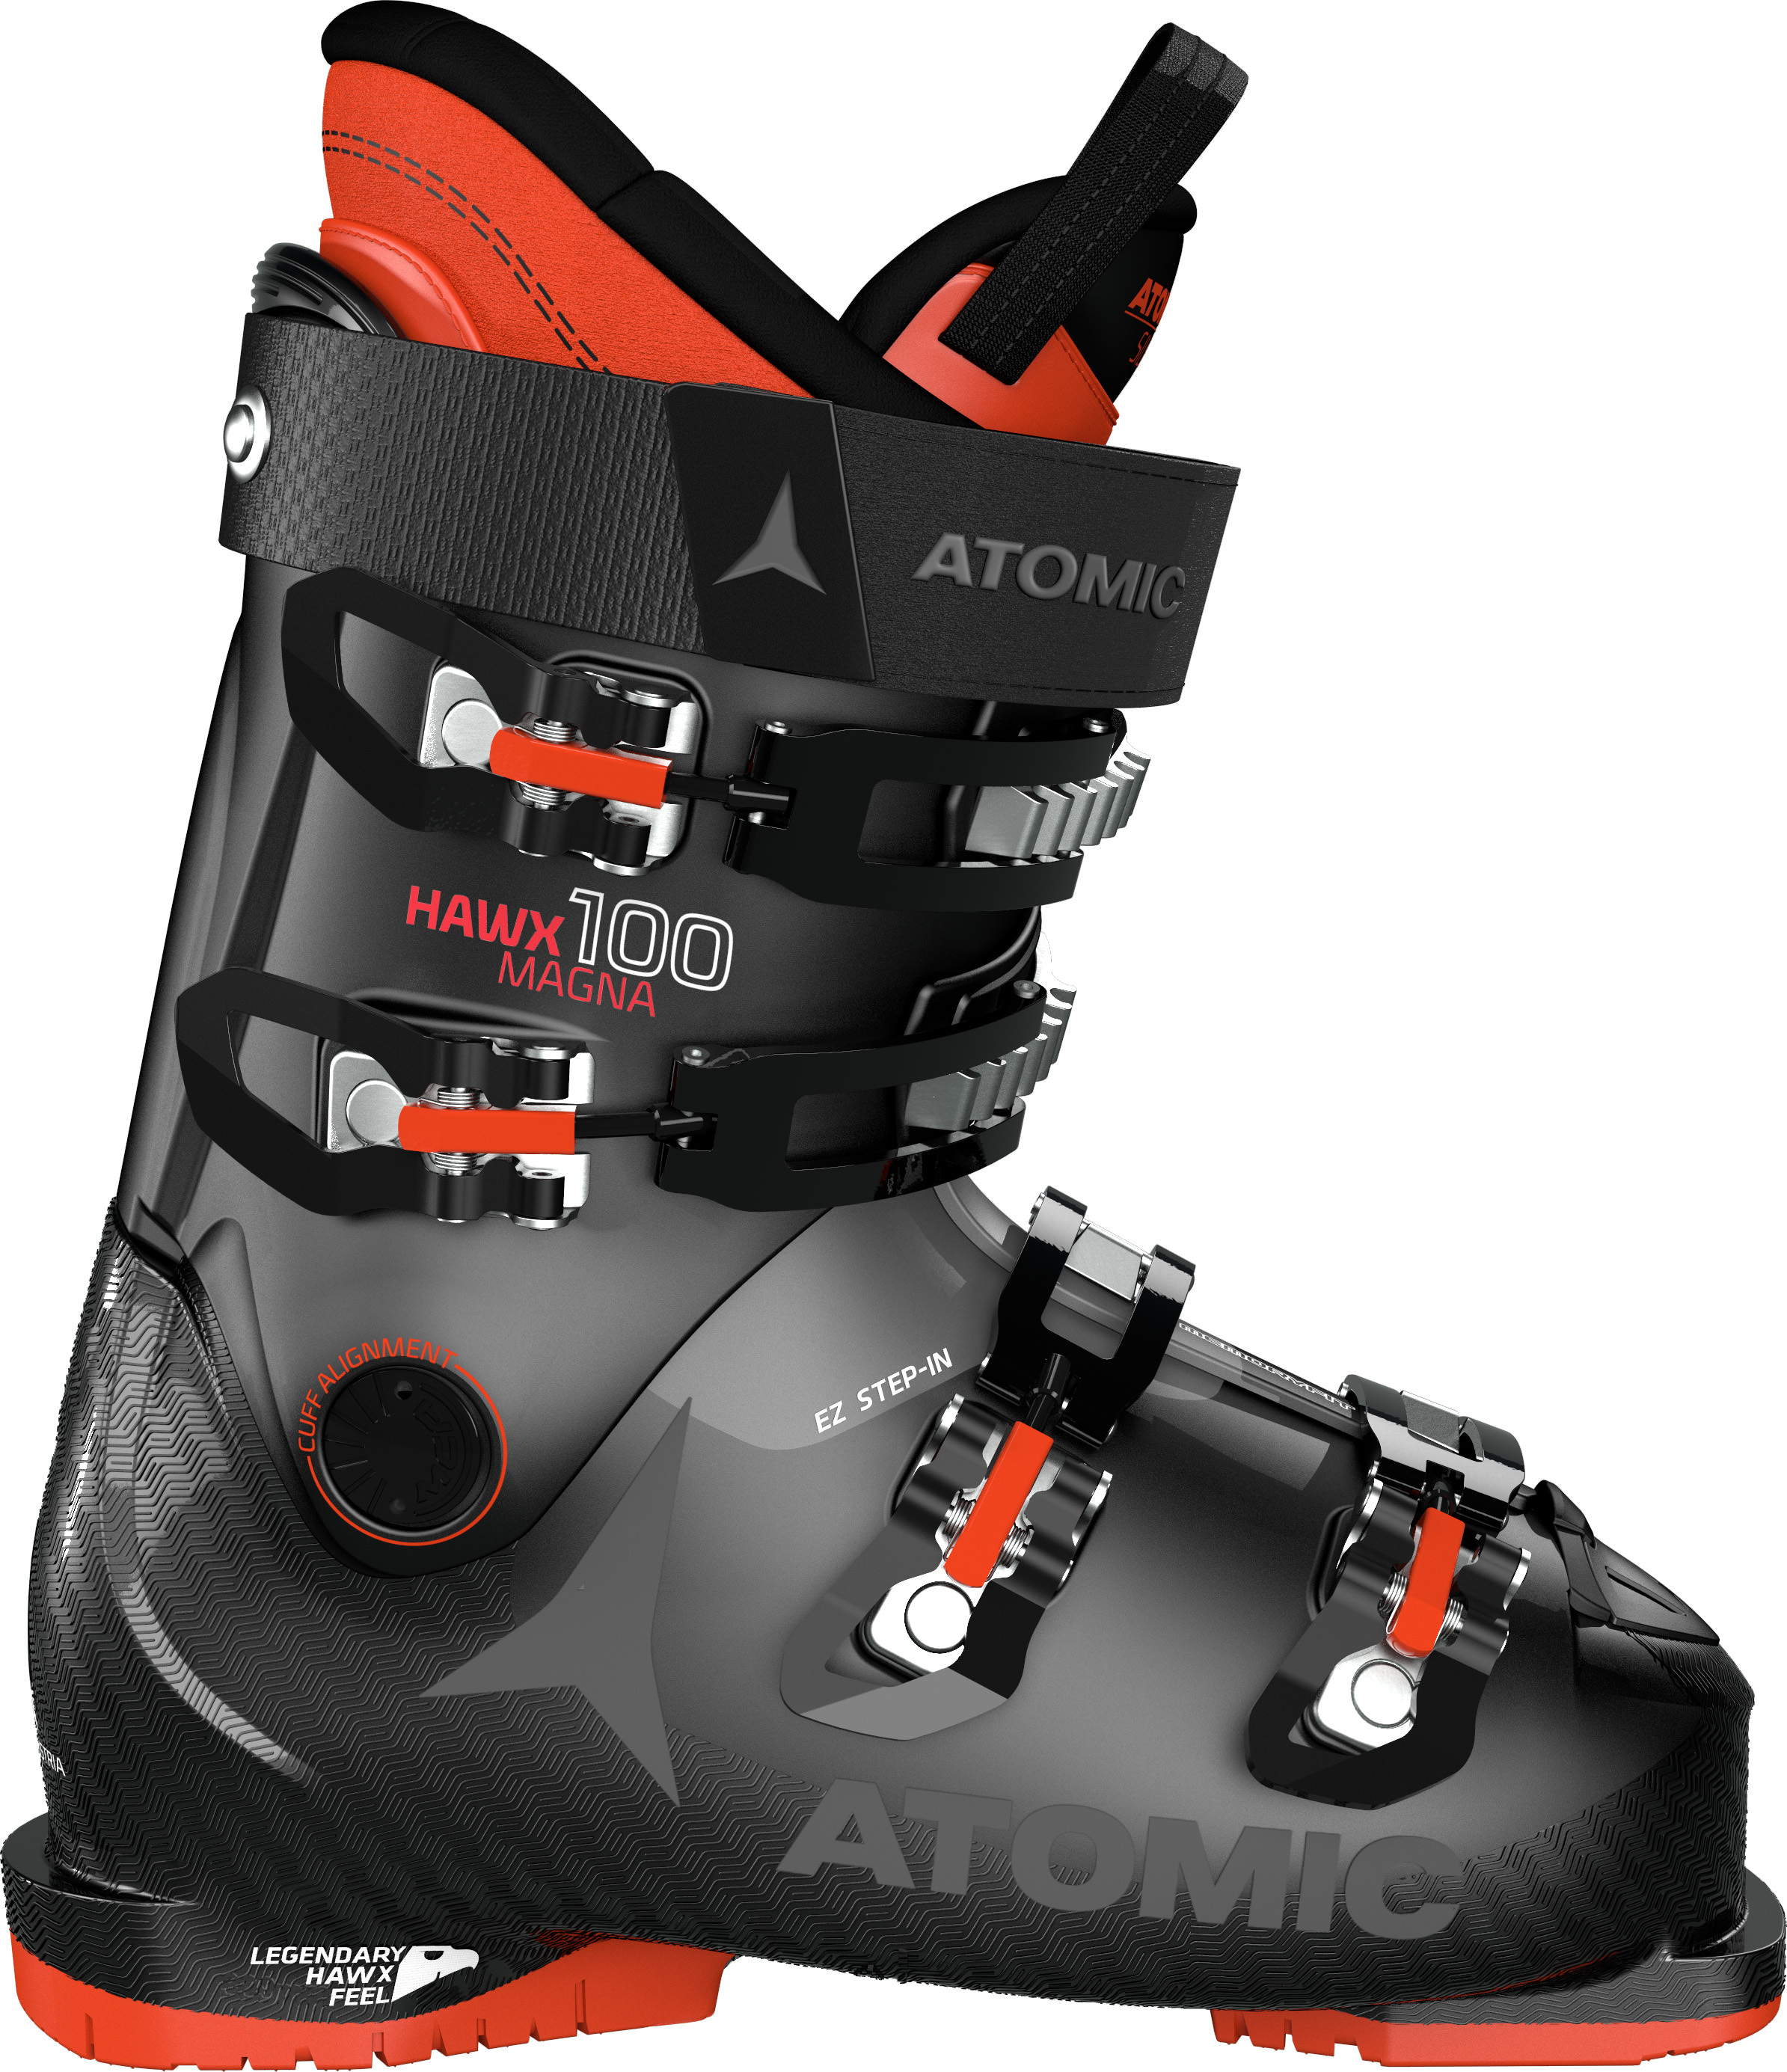 Atomic Hawx Magna 100 Black/Anthracite/Red 20/21 Velikost: 31/31,5